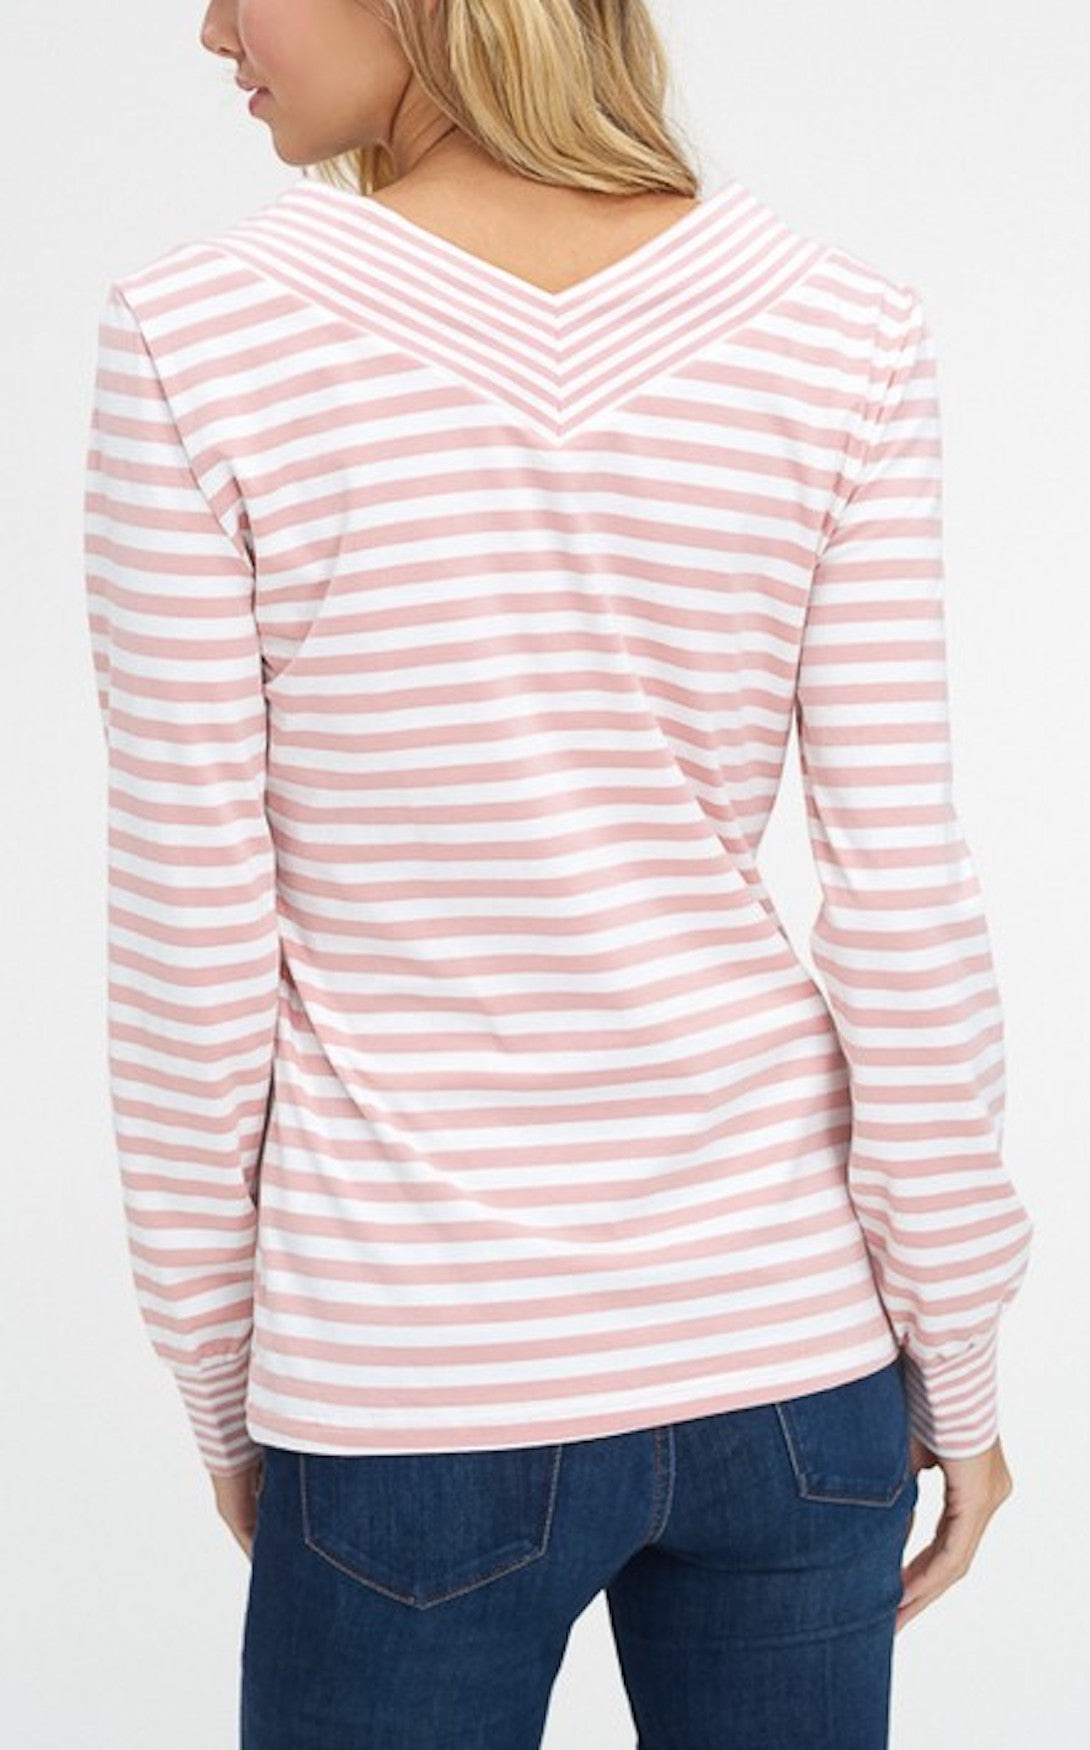 EVERYDAY STRIPE - BLUSH